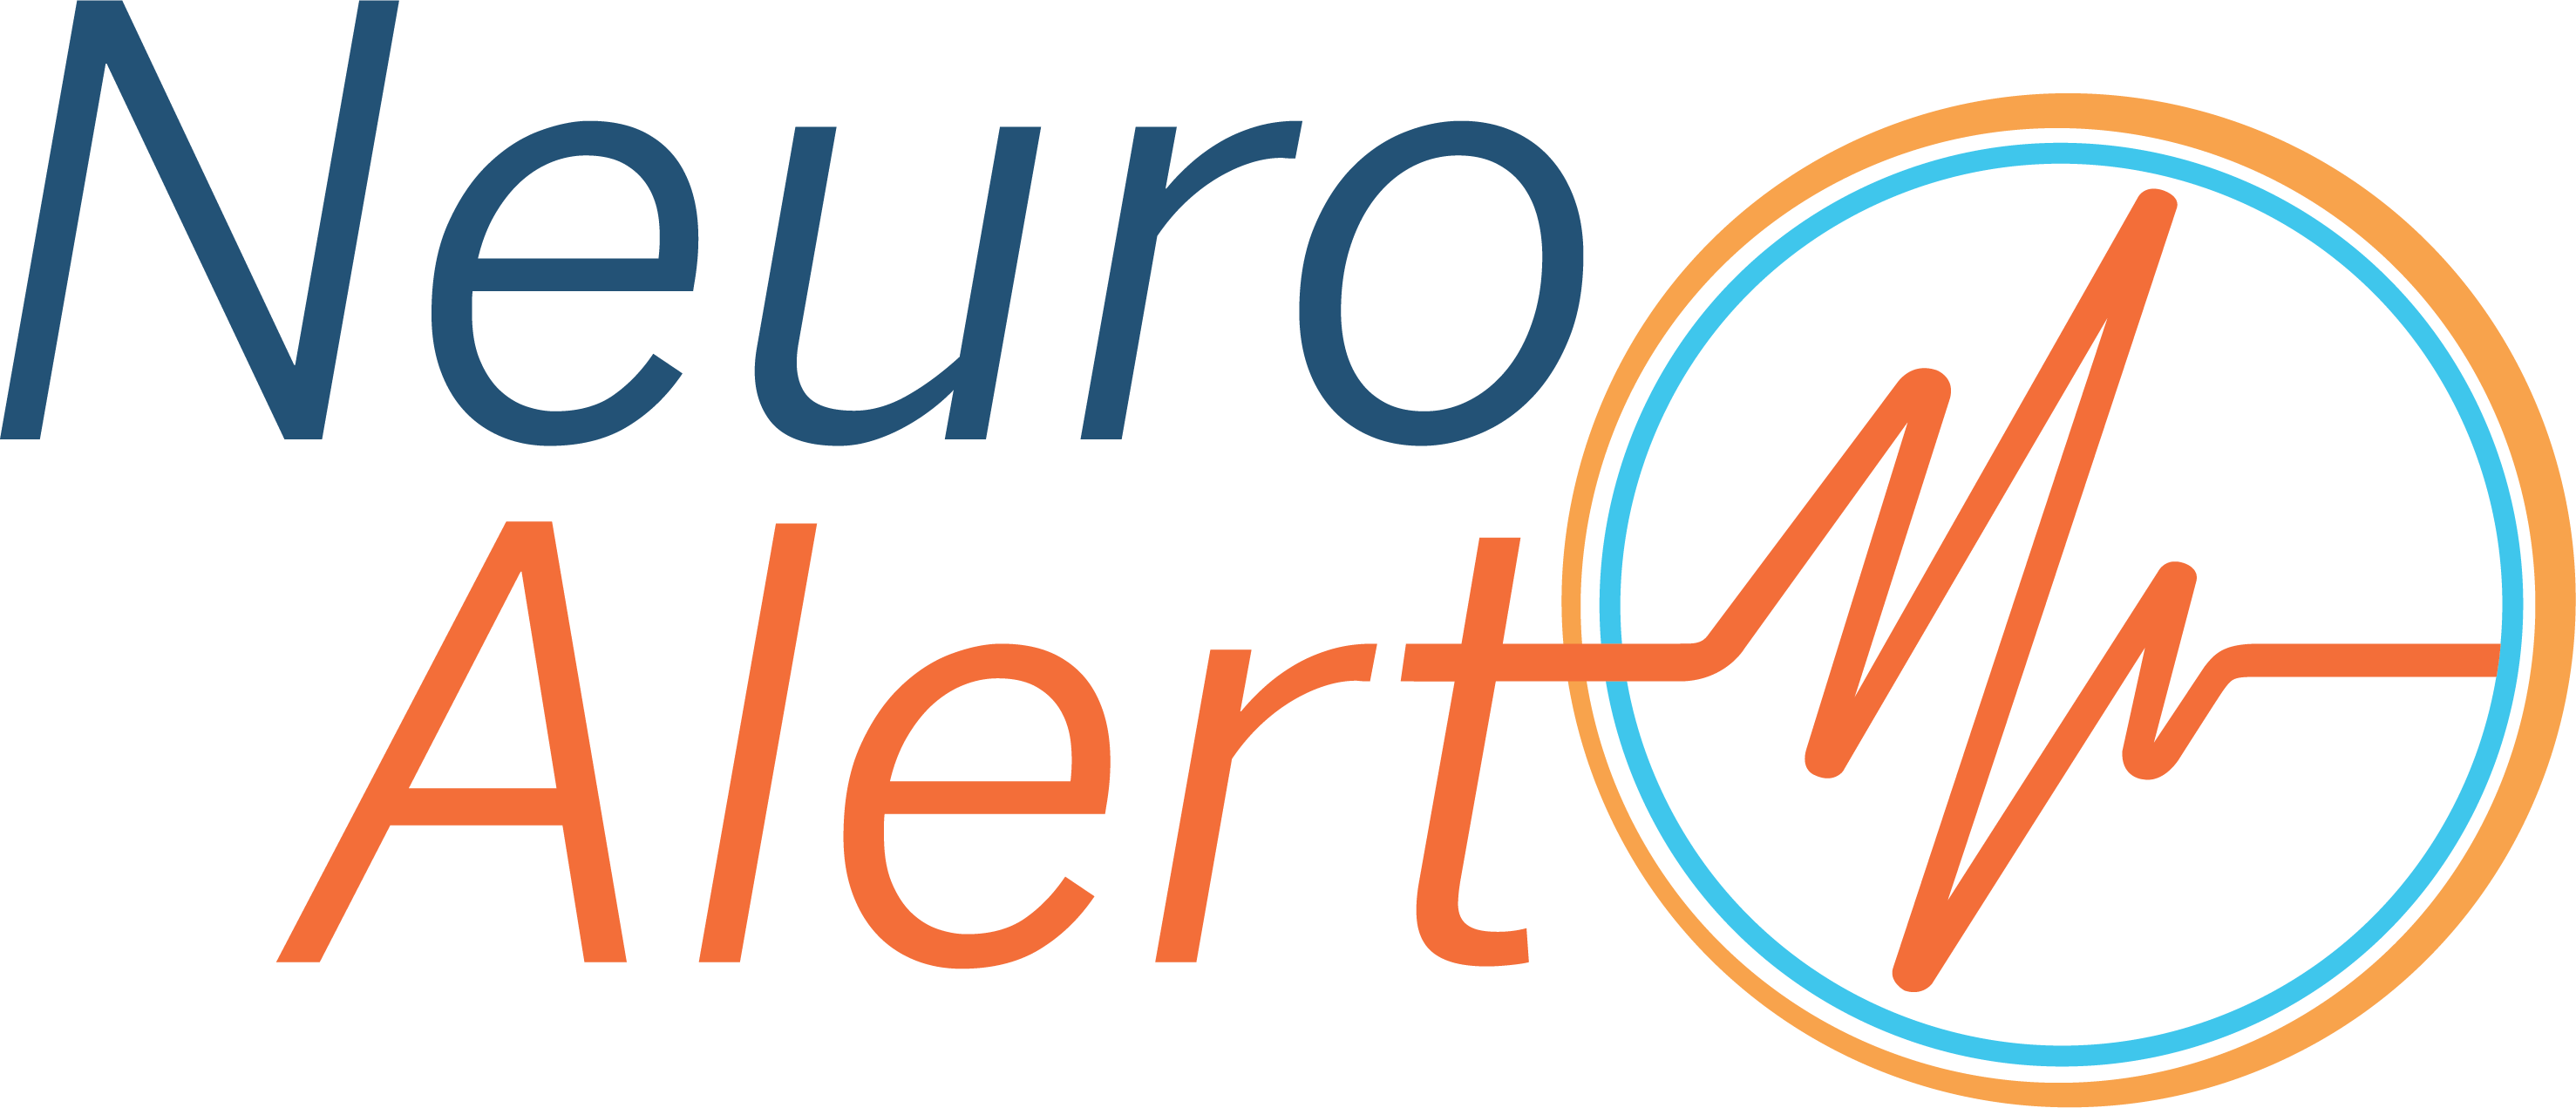 Neuro Alert Appoints Director of Clinical Competency